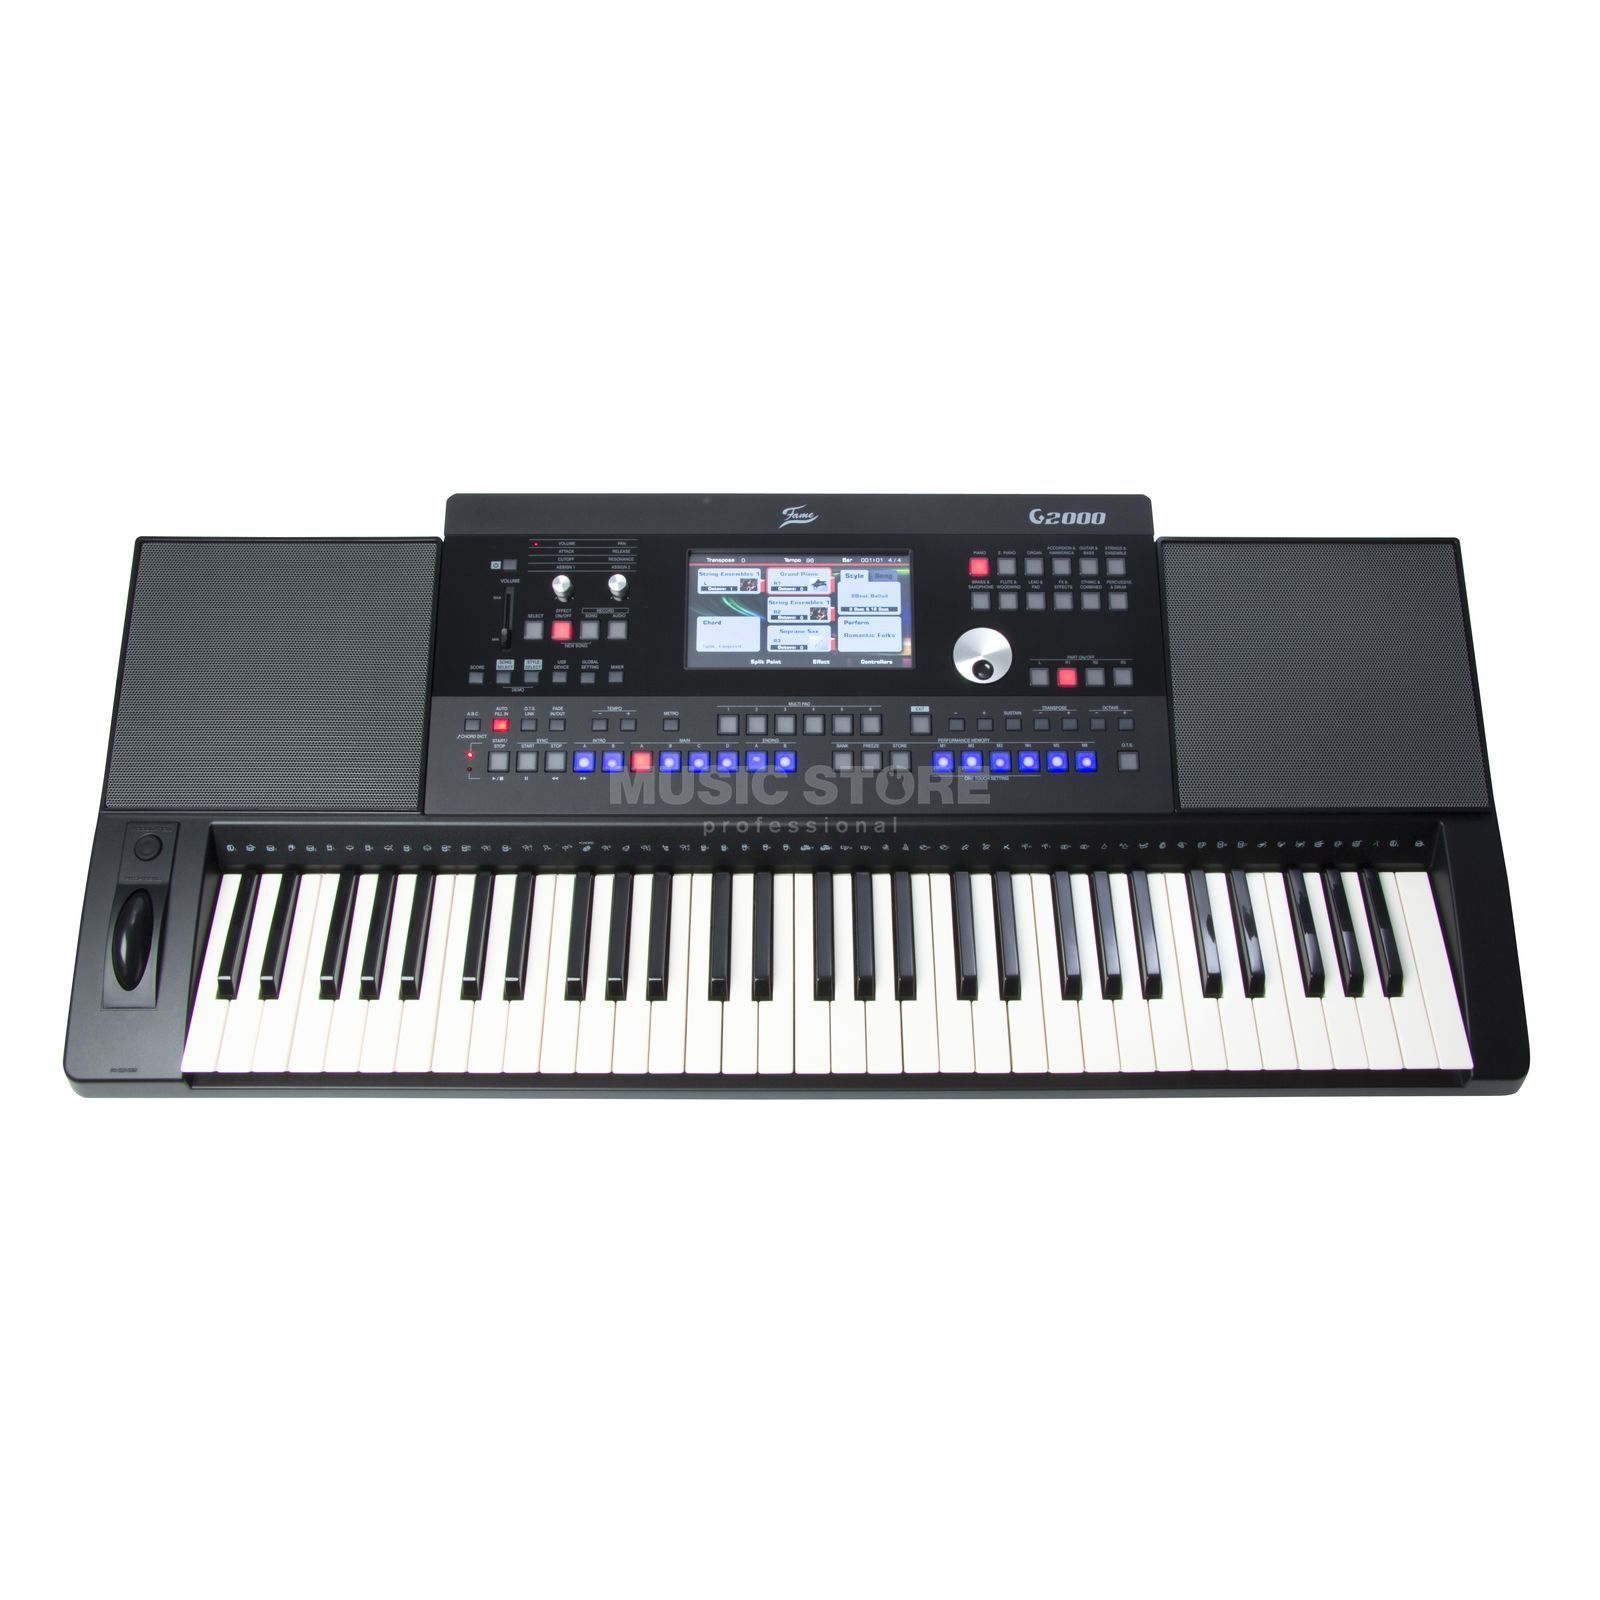 Fame G2000 Workstation Keyboard 61 Touch-Sensitive Keys Produktbillede